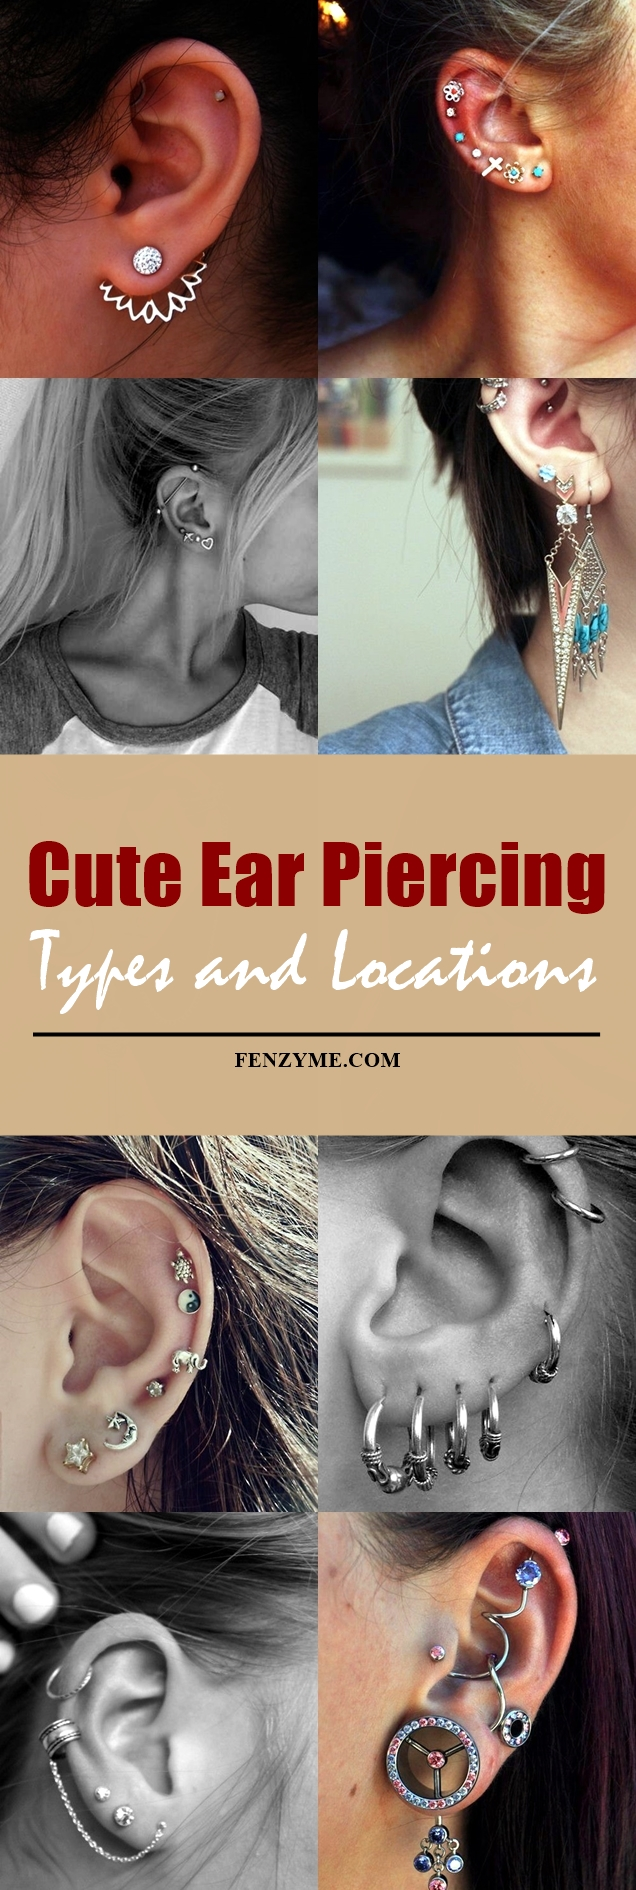 cute-ear-piercing-types-and-locations-1-tile